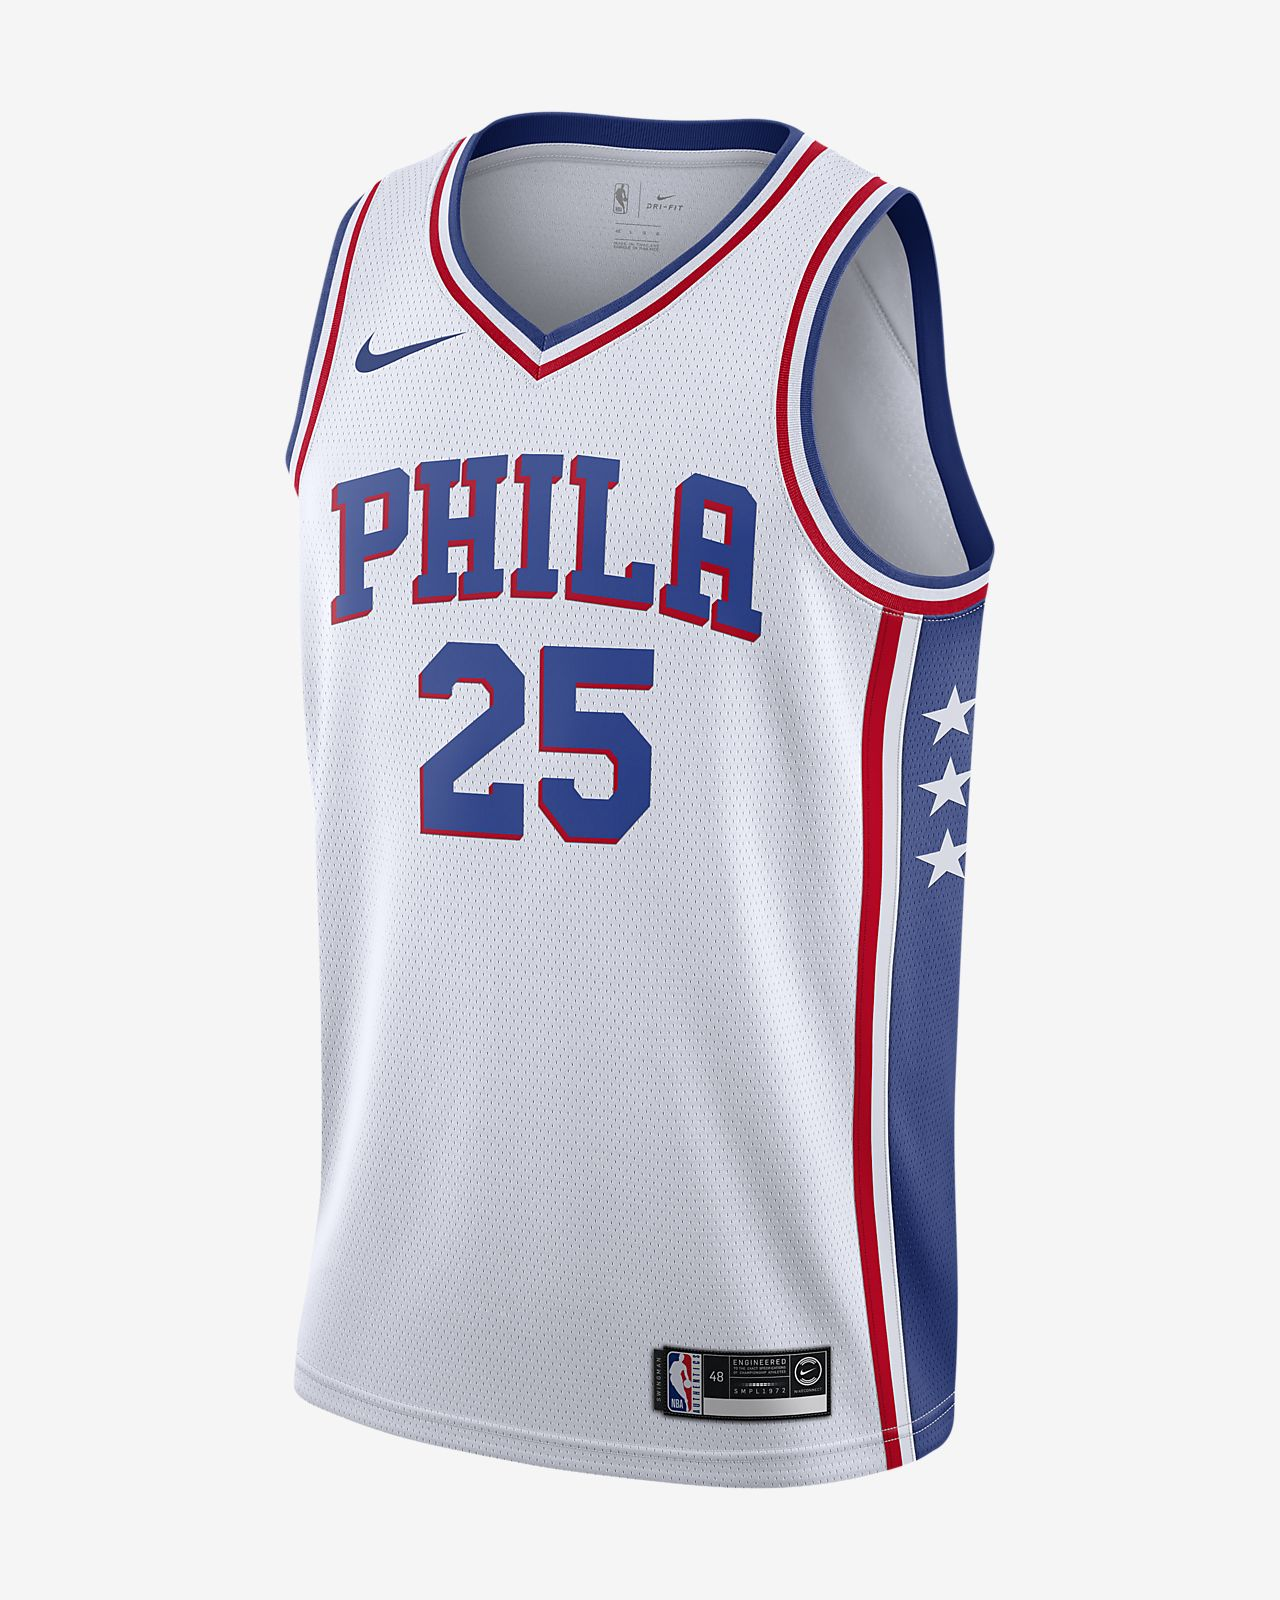 Ben Simmons 76ers Association Edition Samarreta de l'NBA de Nike Swingman